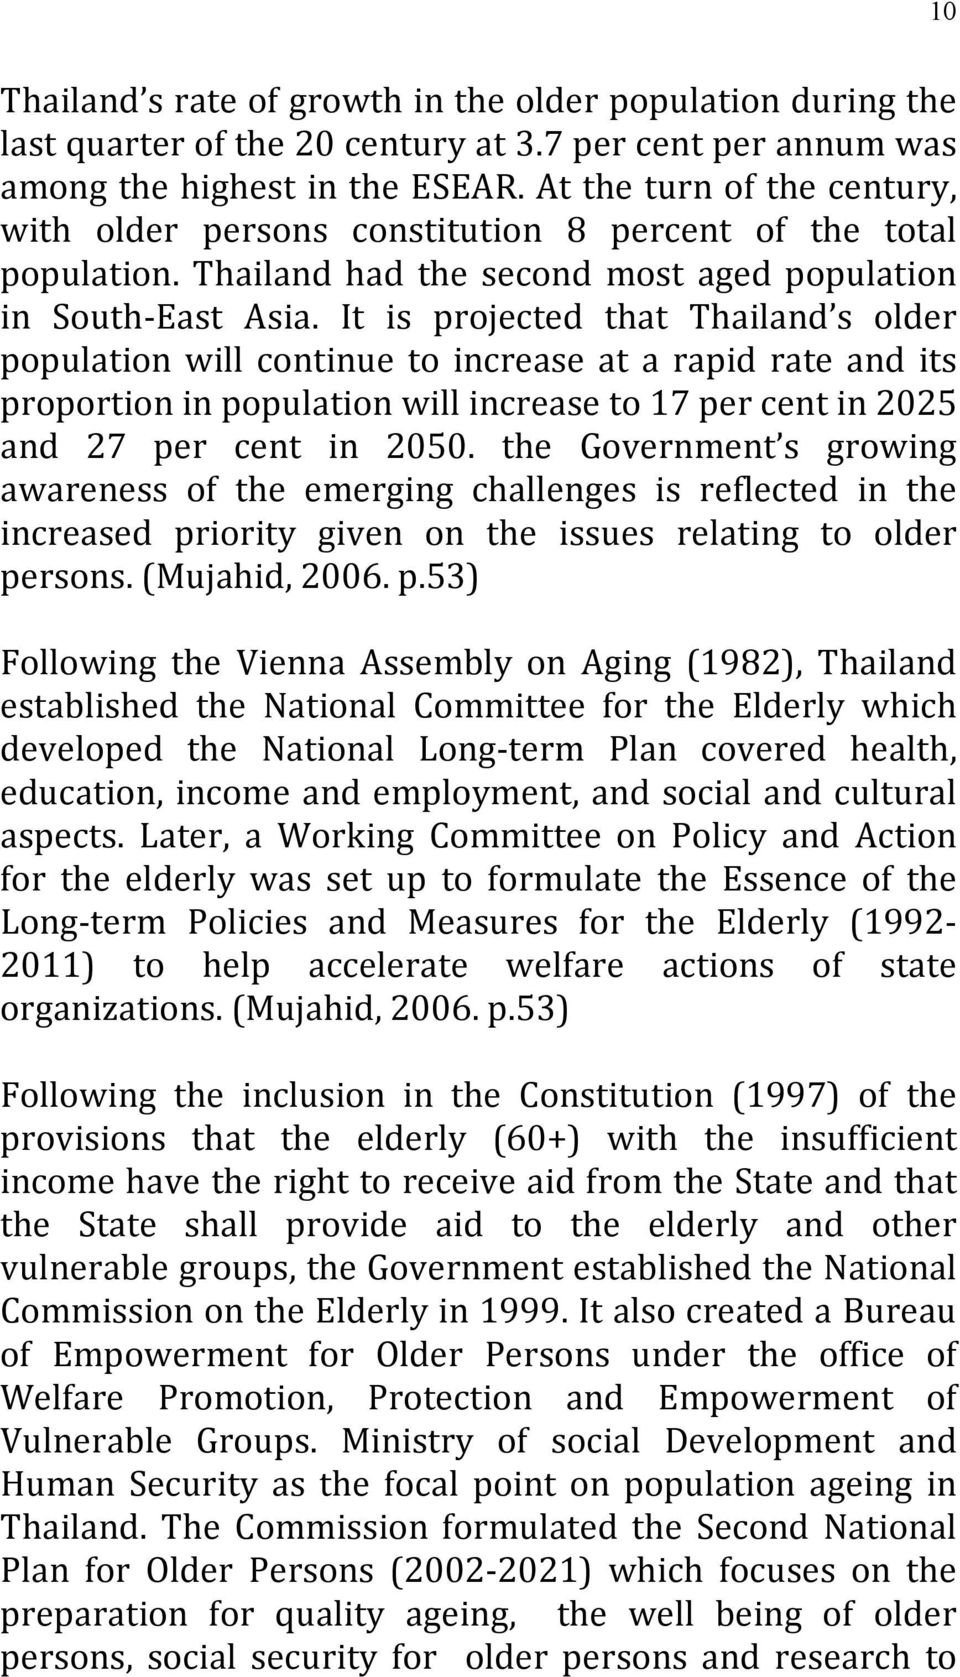 It is projected that Thailand s older population will continue to increase at a rapid rate and its proportion in population will increase to 17 per cent in 2025 and 27 per cent in 2050.